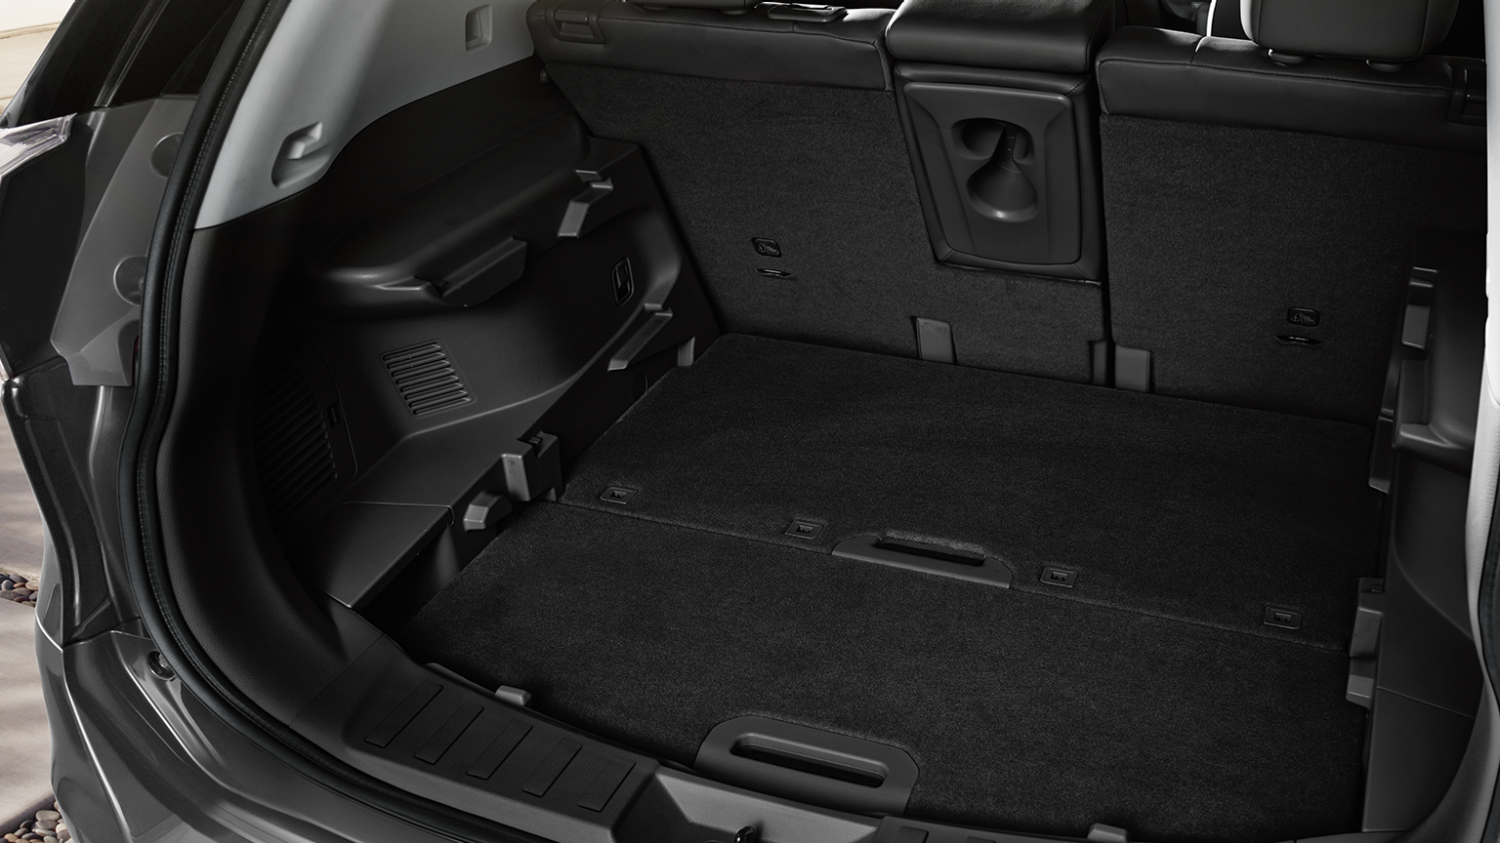 Nissan X-Trail | Secure storage